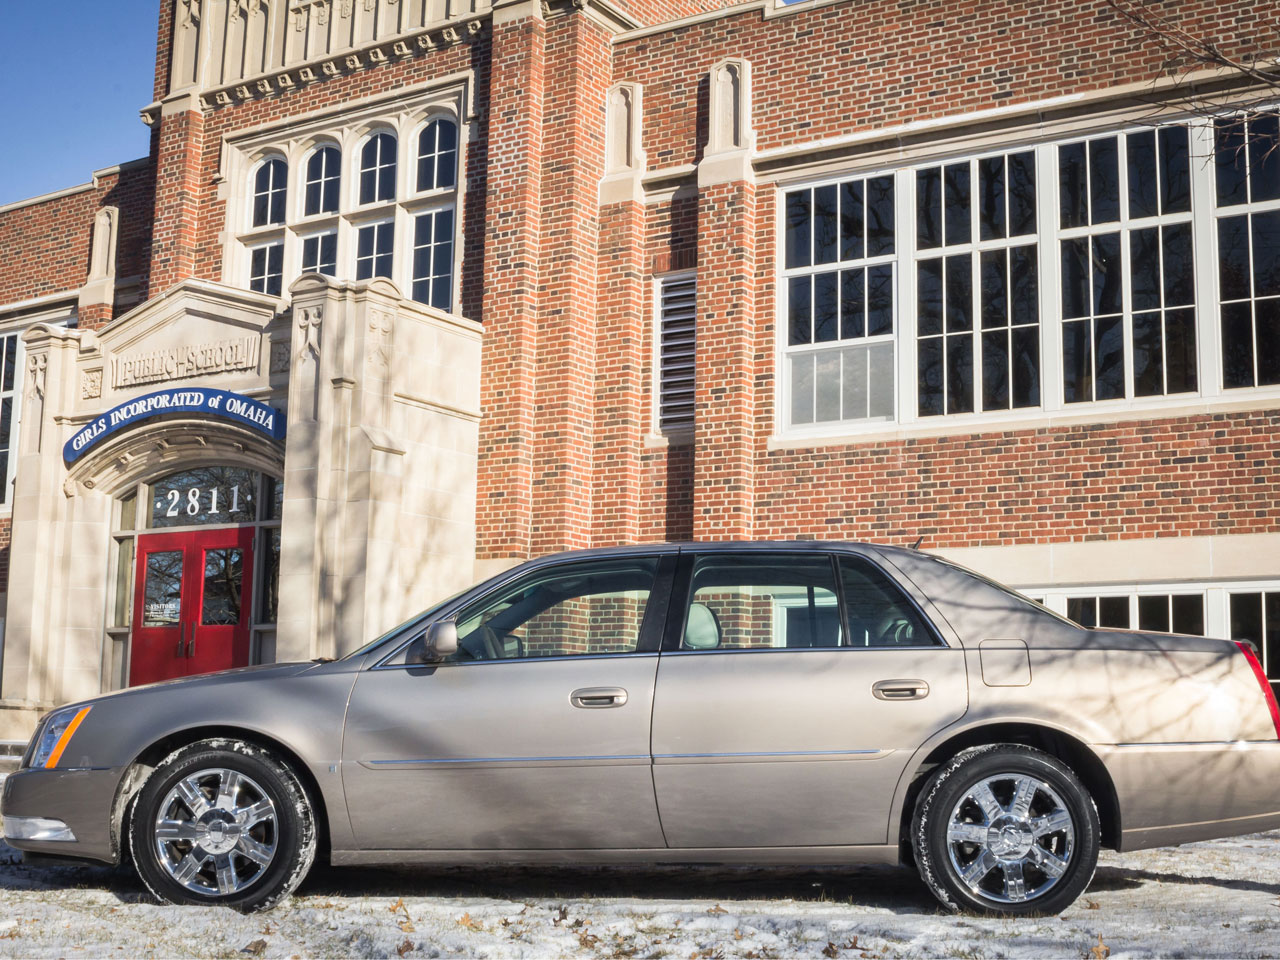 Warren Buffett's 2006 Cadillac DTS auctioned for $122,000 ...